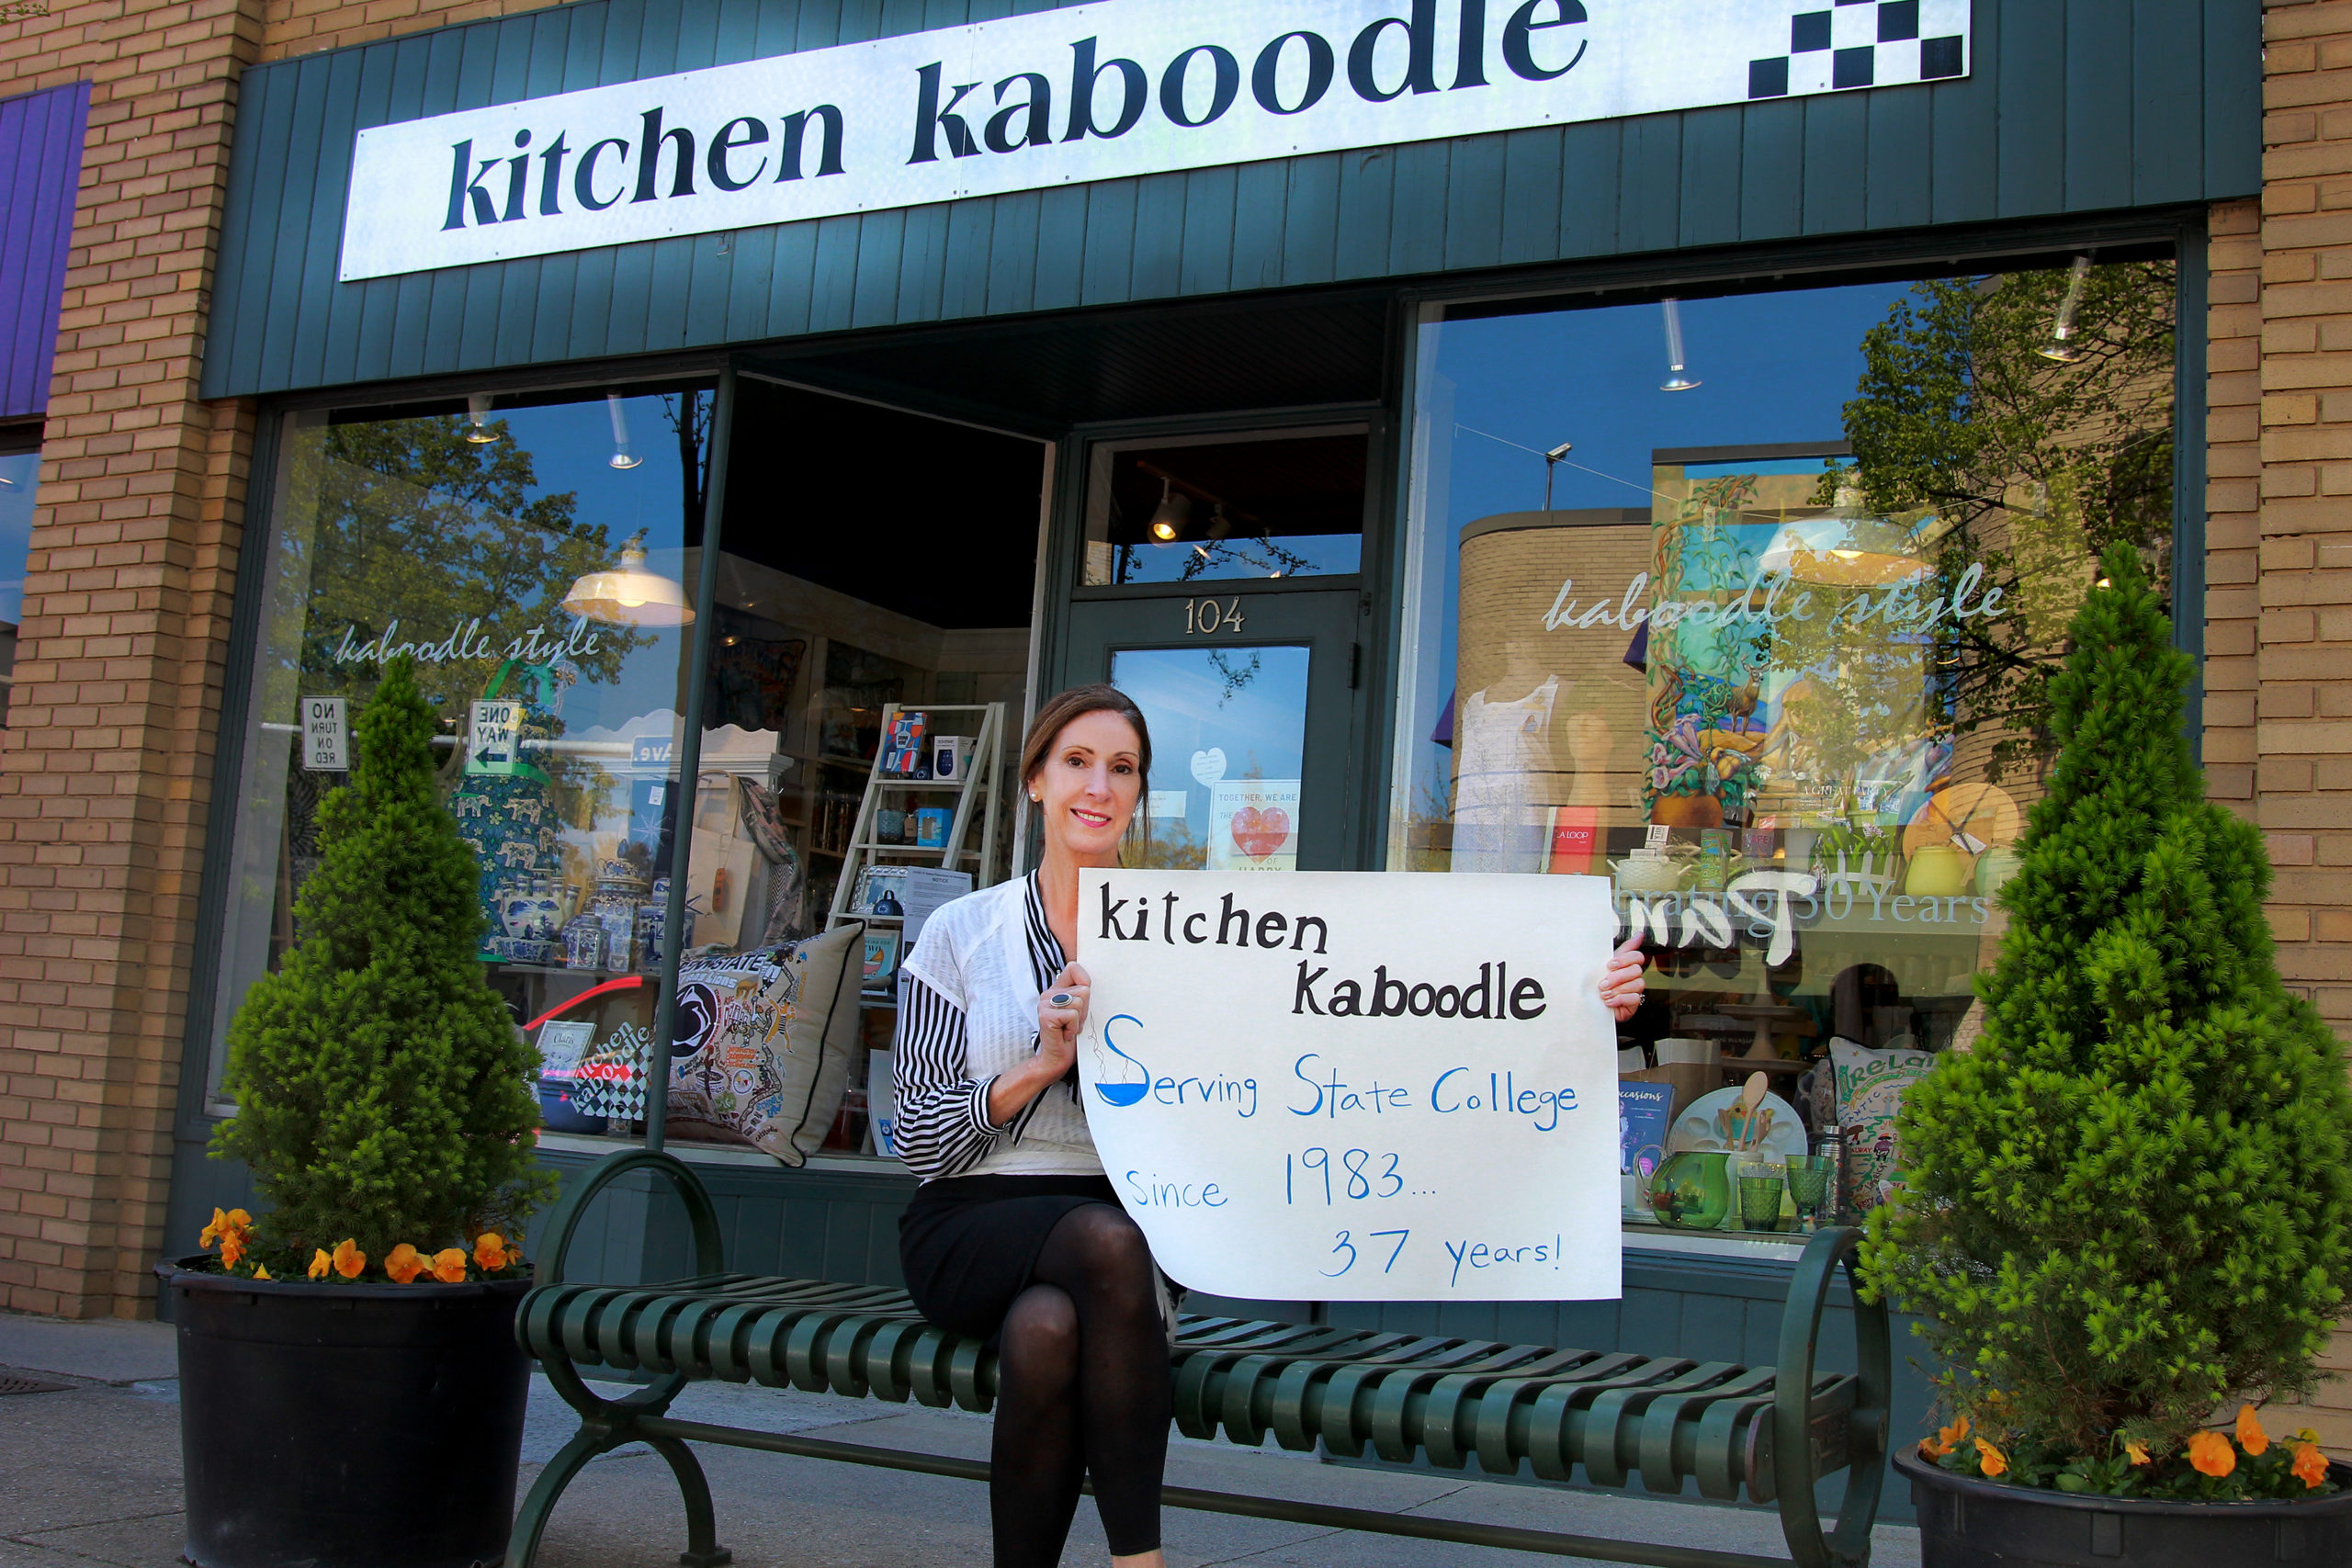 Treating Your Homes For 37 Years Kitchen Kaboodle Downtown State College Improvement District